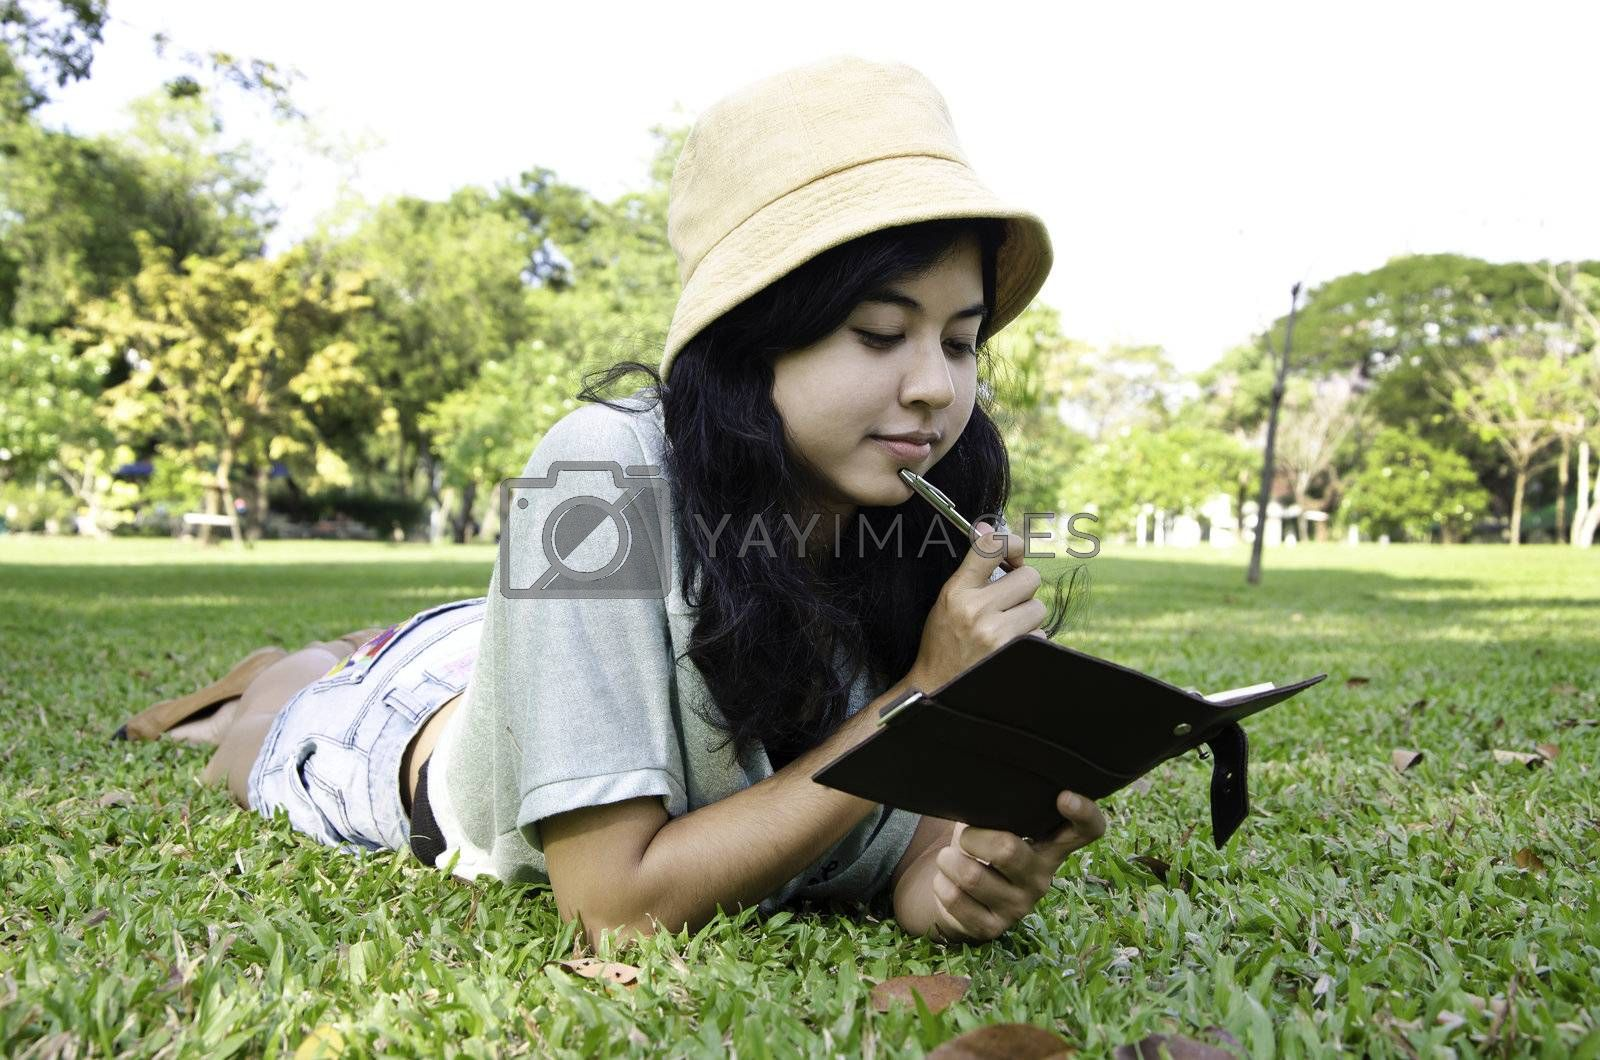 Asian woman laying on grass and thinking in park